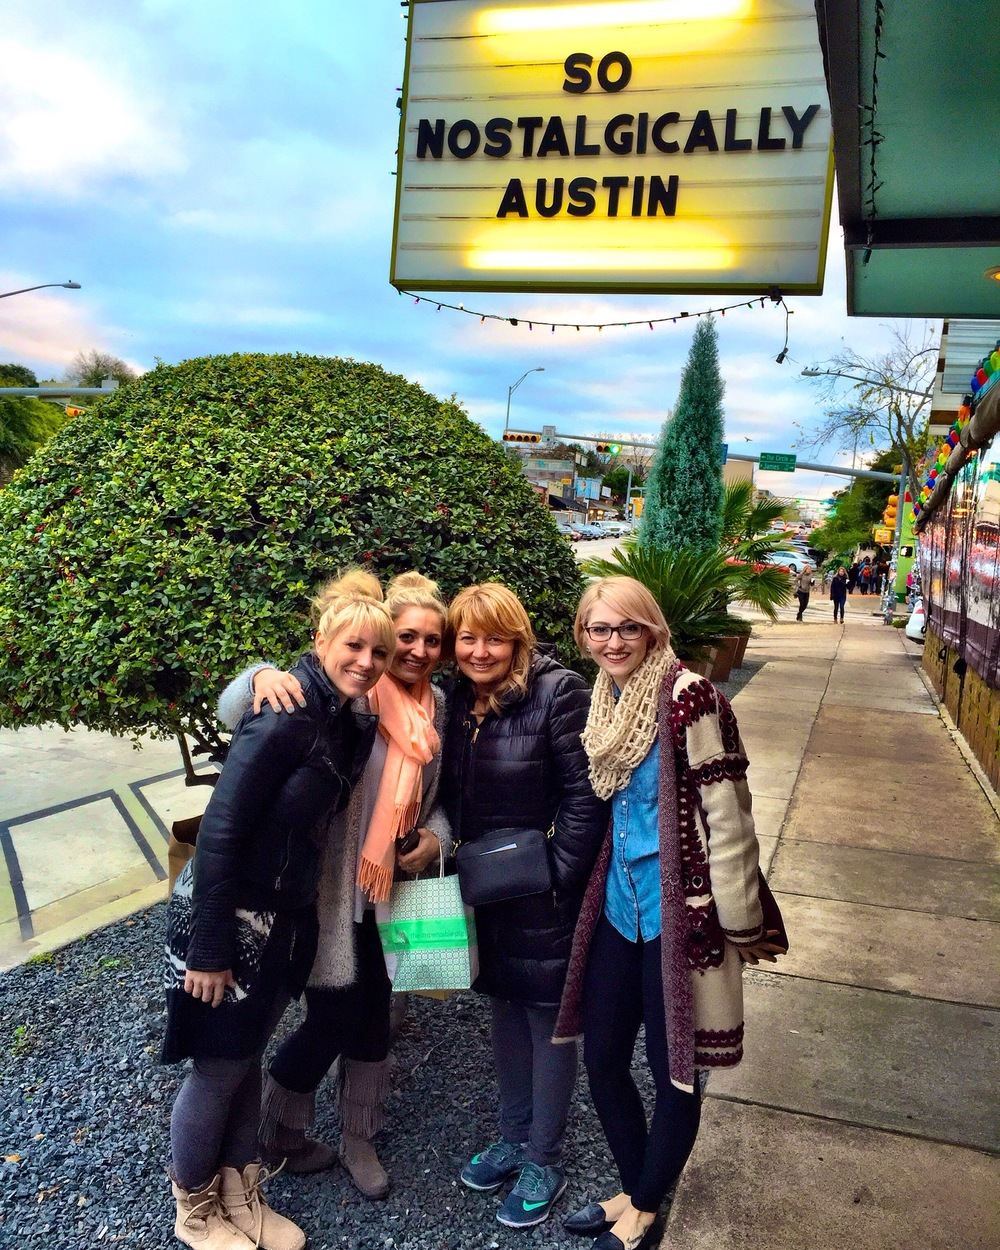 After the Trail of Lights ended, I took my family around ATX. This photo was taken on a girls shopping day on SoCo.